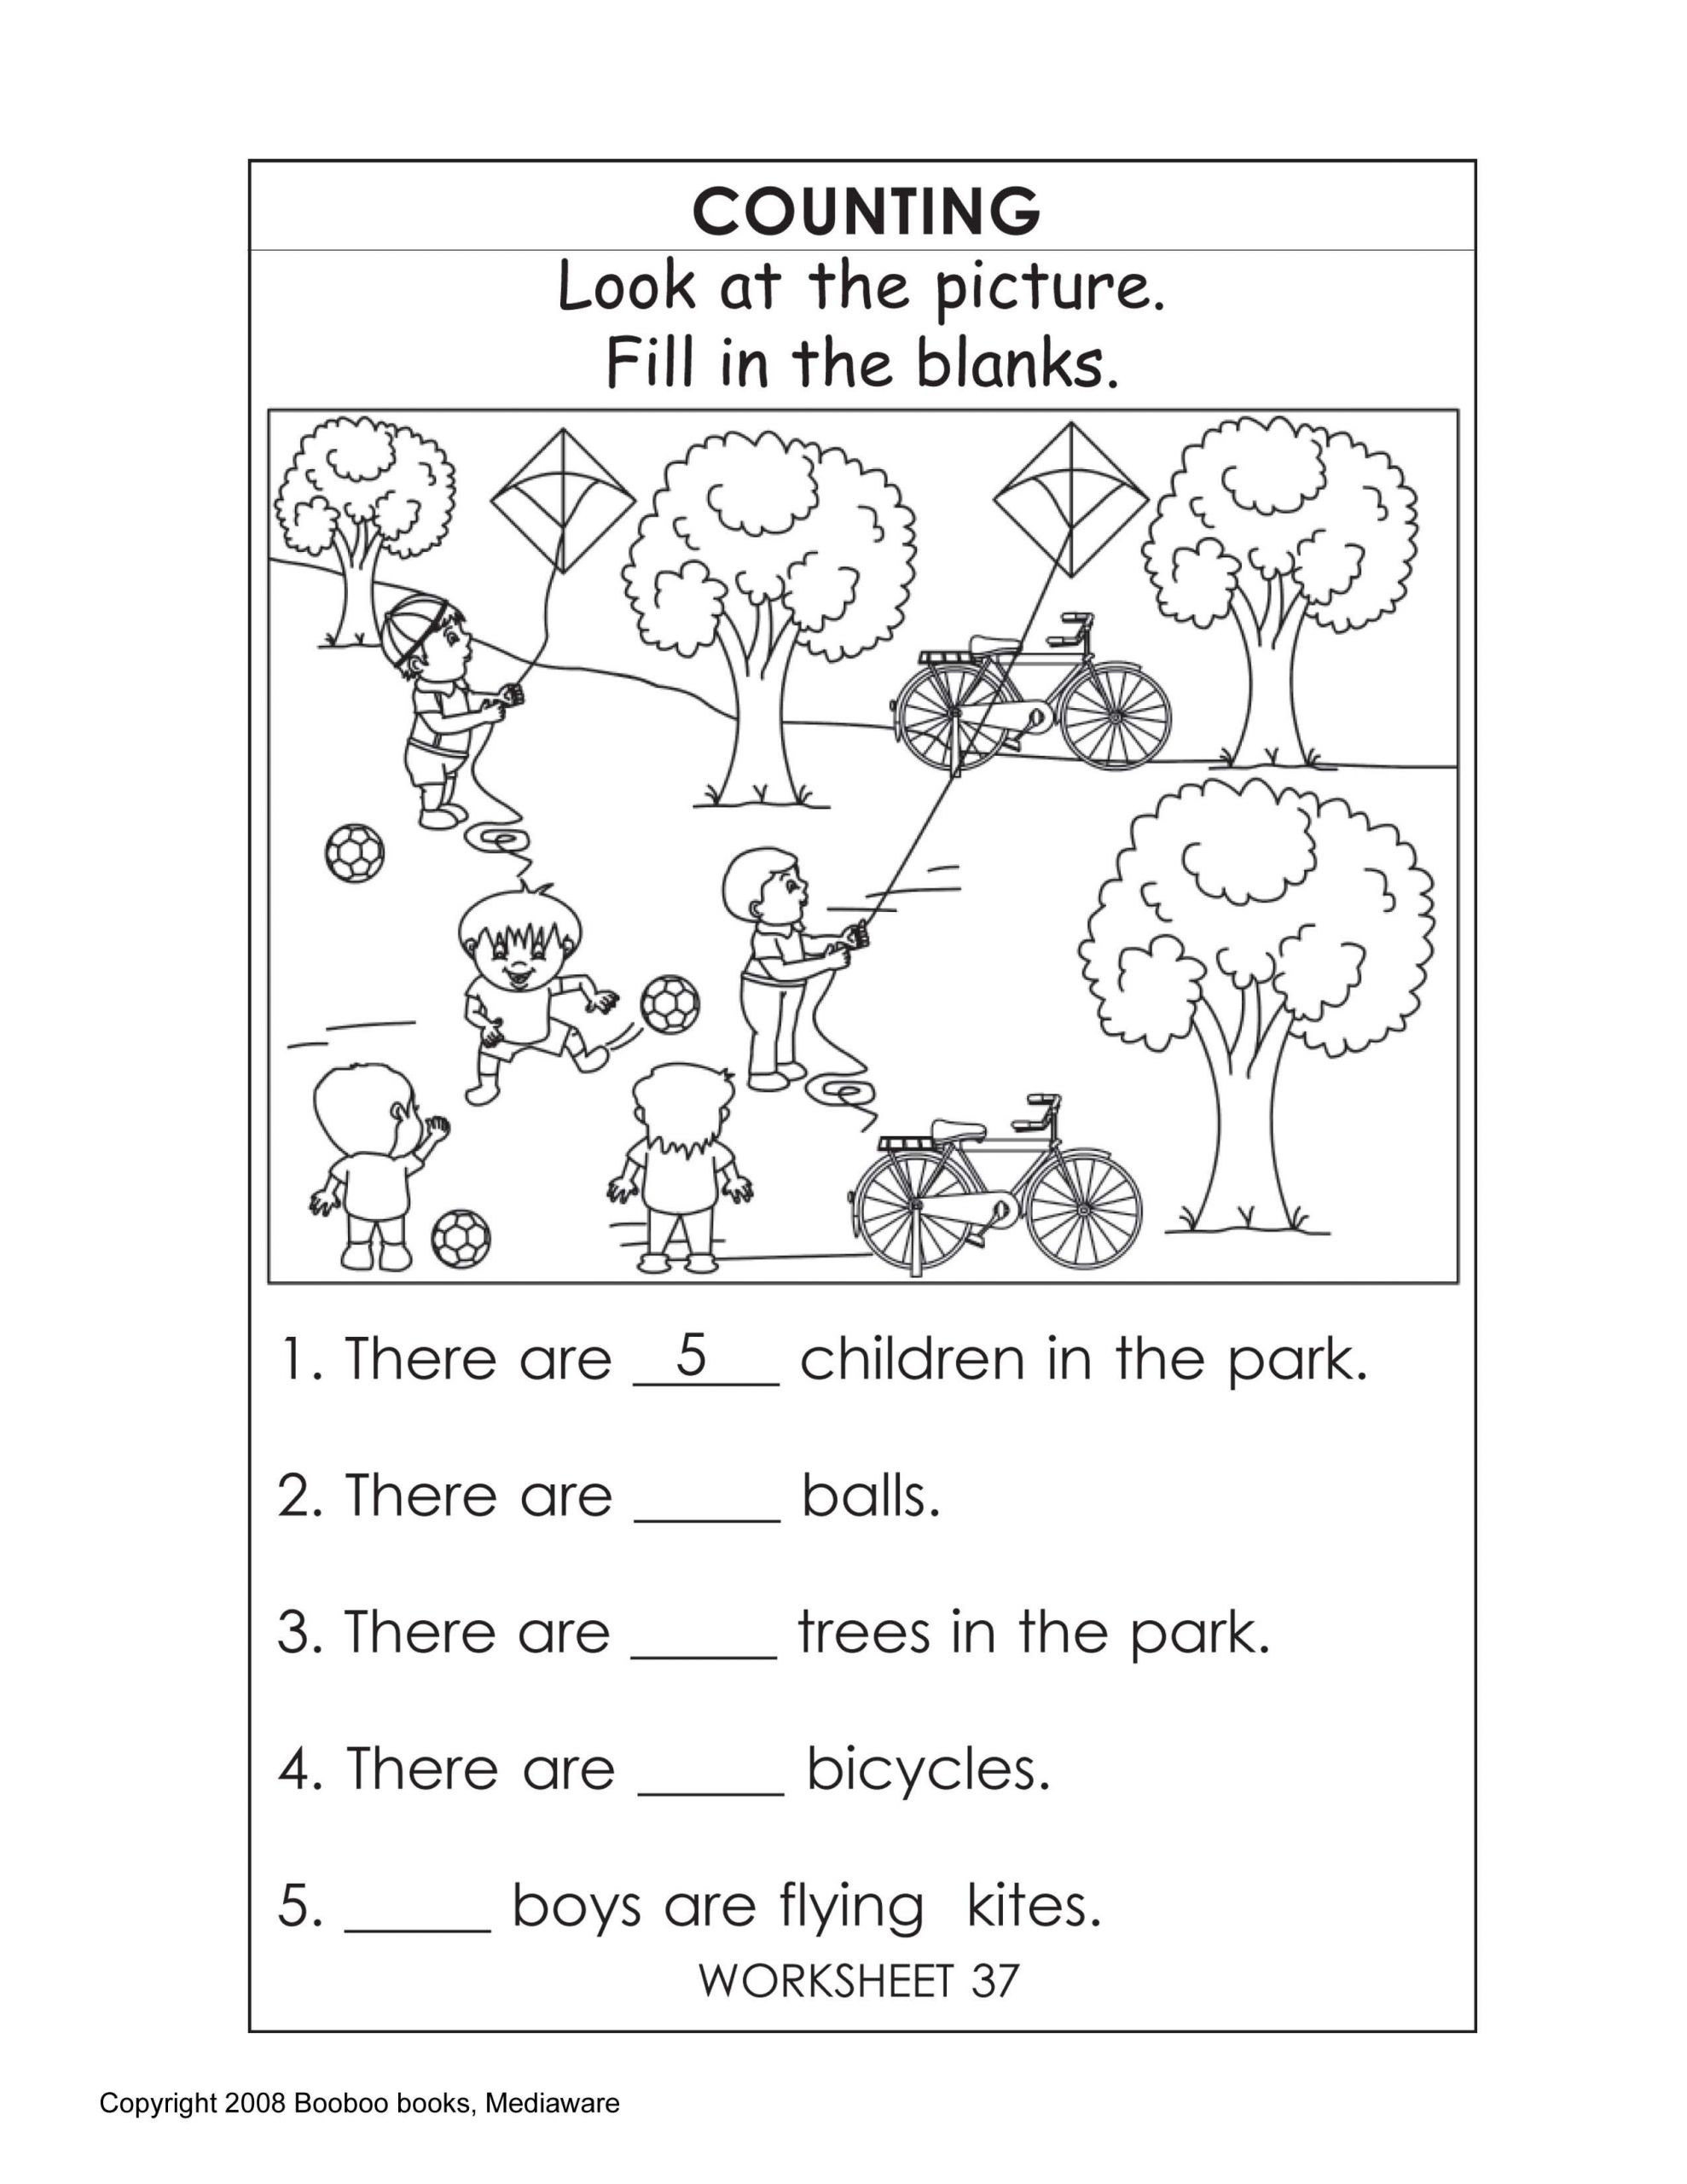 5th Grade History Worksheets Monthly Archives August 2020 Number 7 and 8 Worksheets